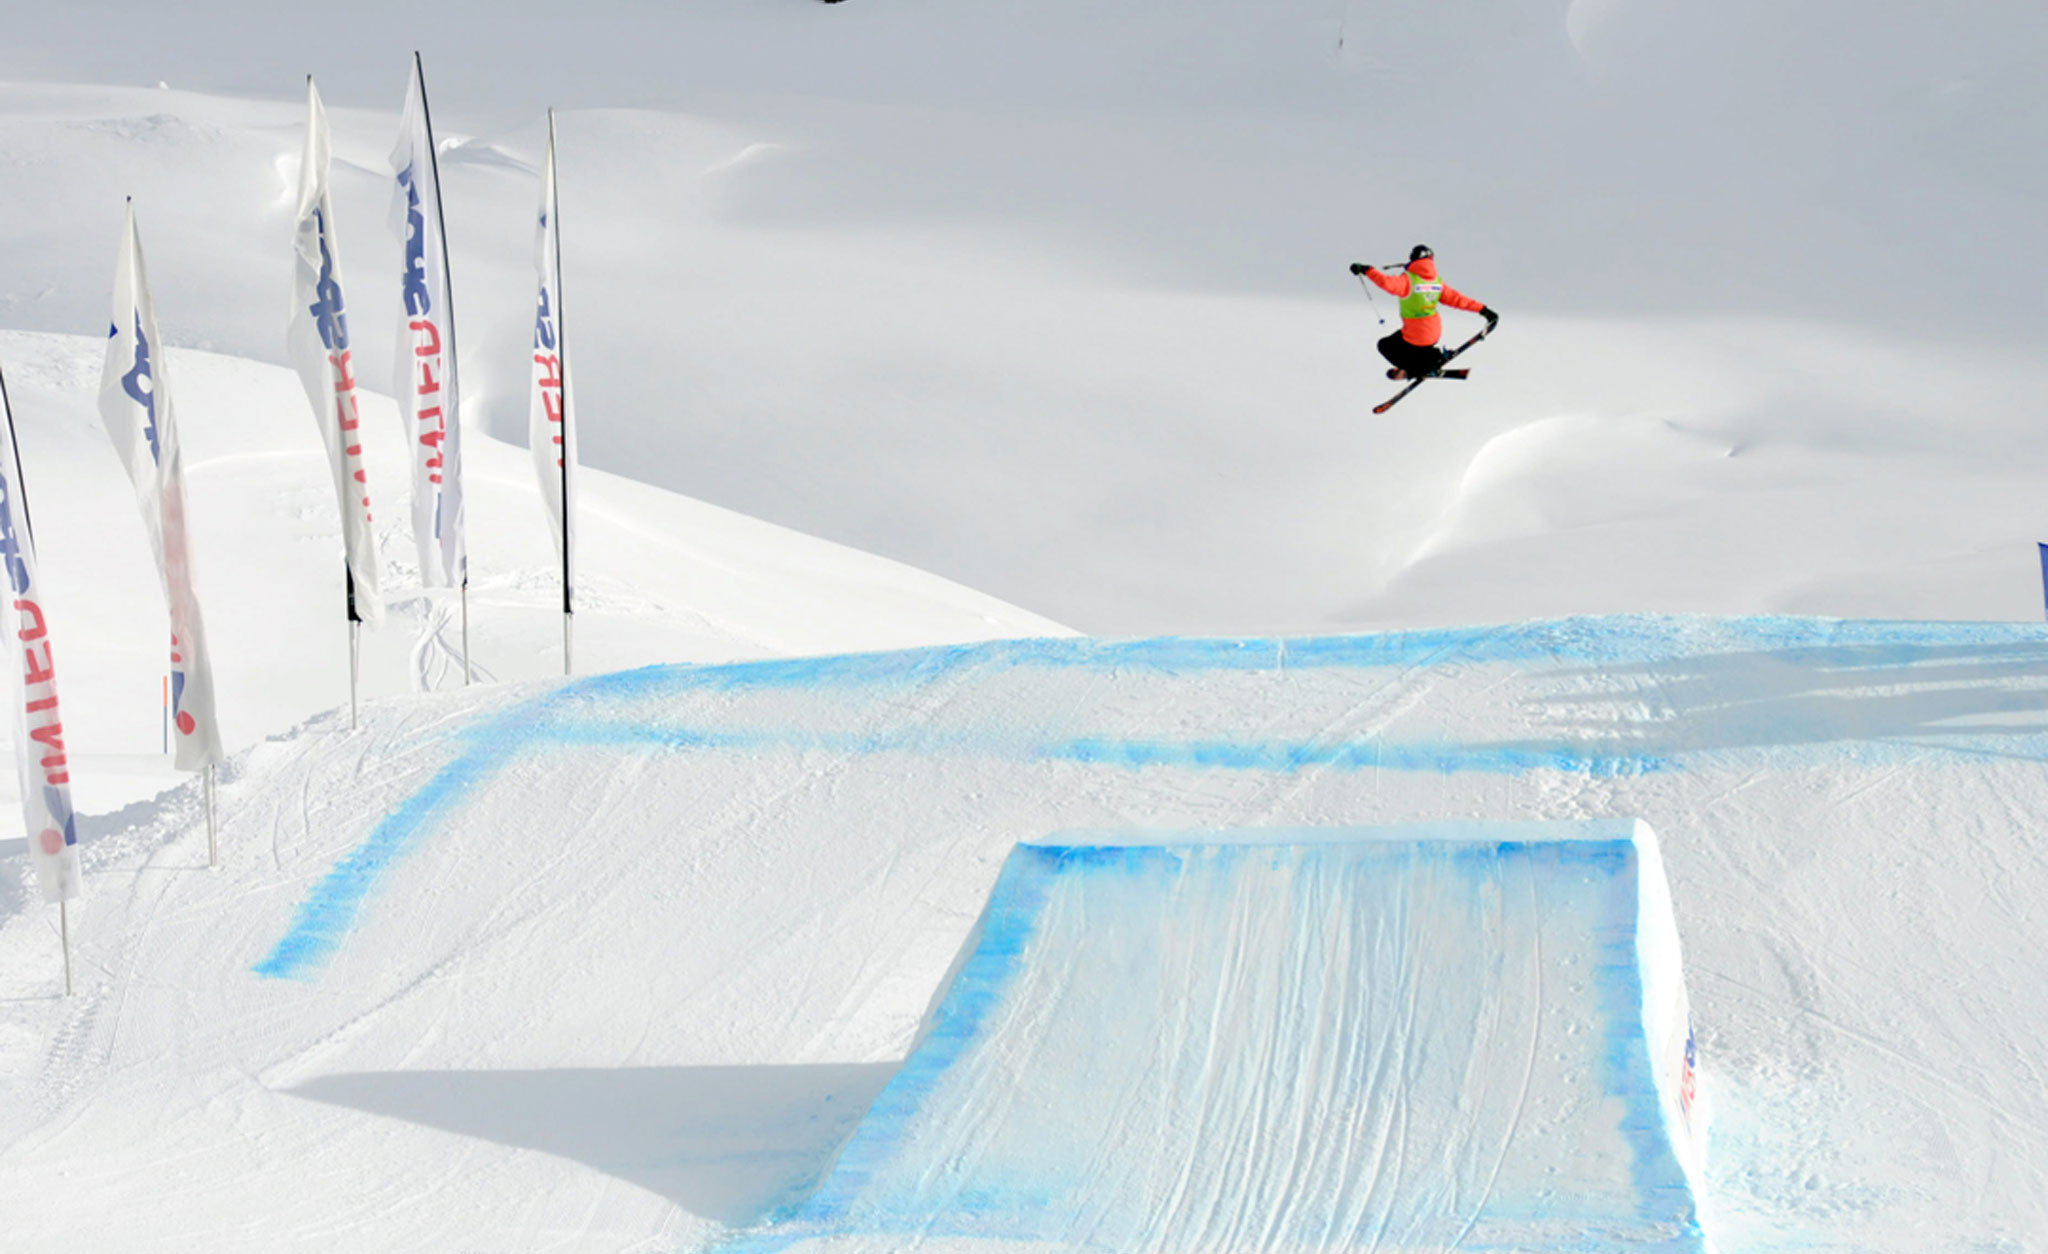 The Women's Slopestyle gold medalist from X Games Aspen, Tiril Sjaastad Christiansen, won again at a World Cup in Switzerland.